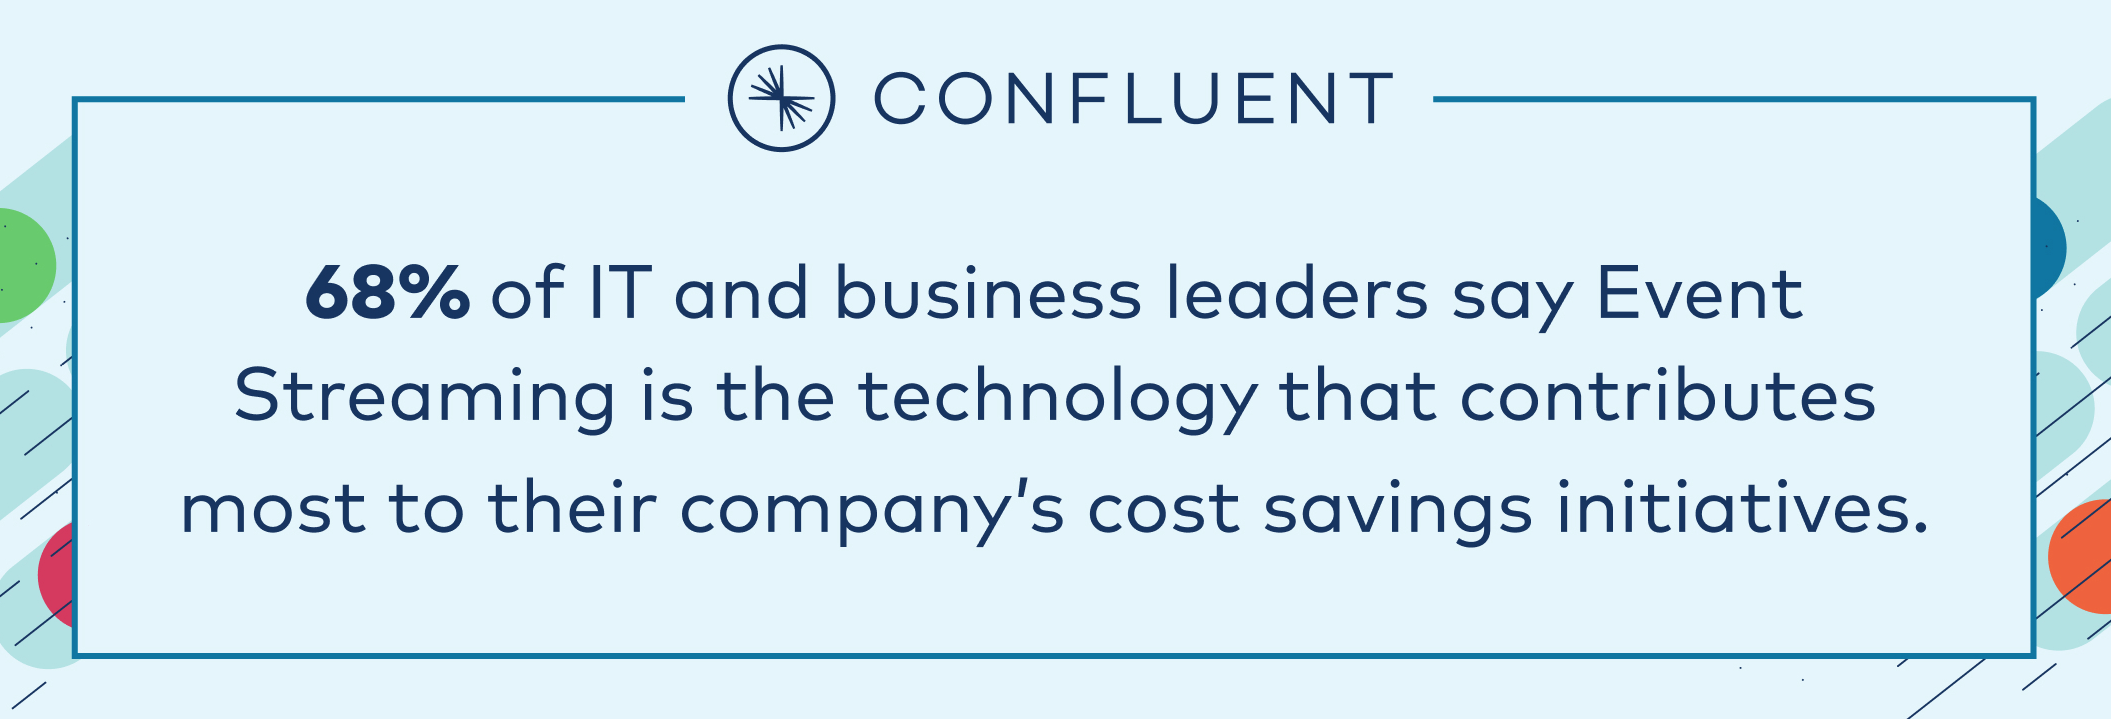 68% of IT and business leaders say event streaming is the technology that contributes most to their company's cost savings initiatives.